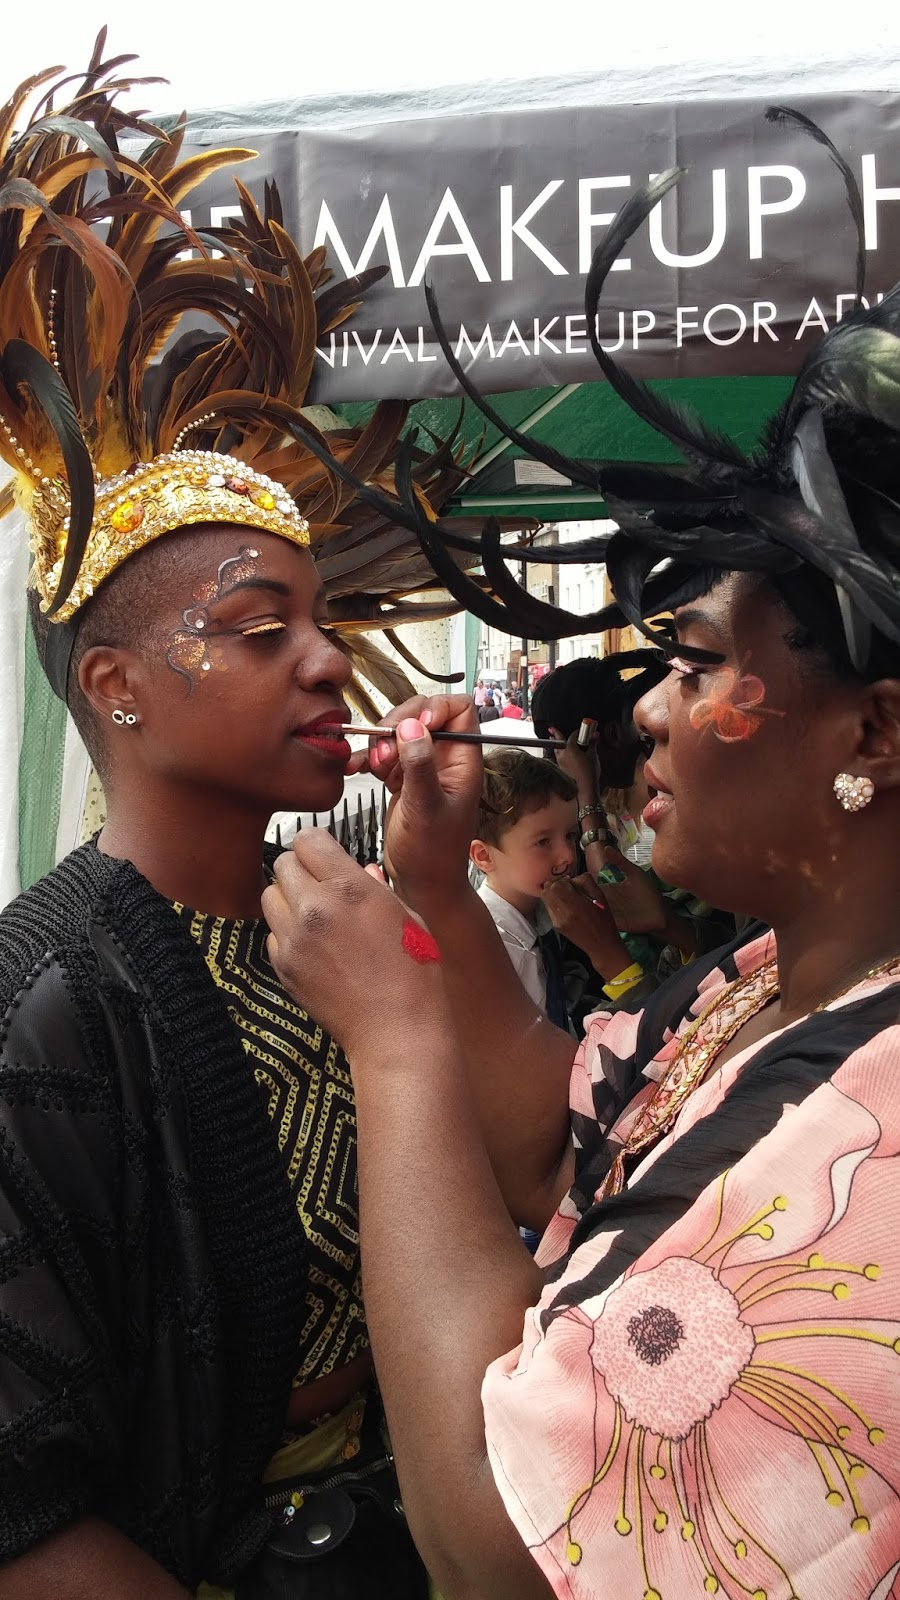 Notting Hill Carnival makeup